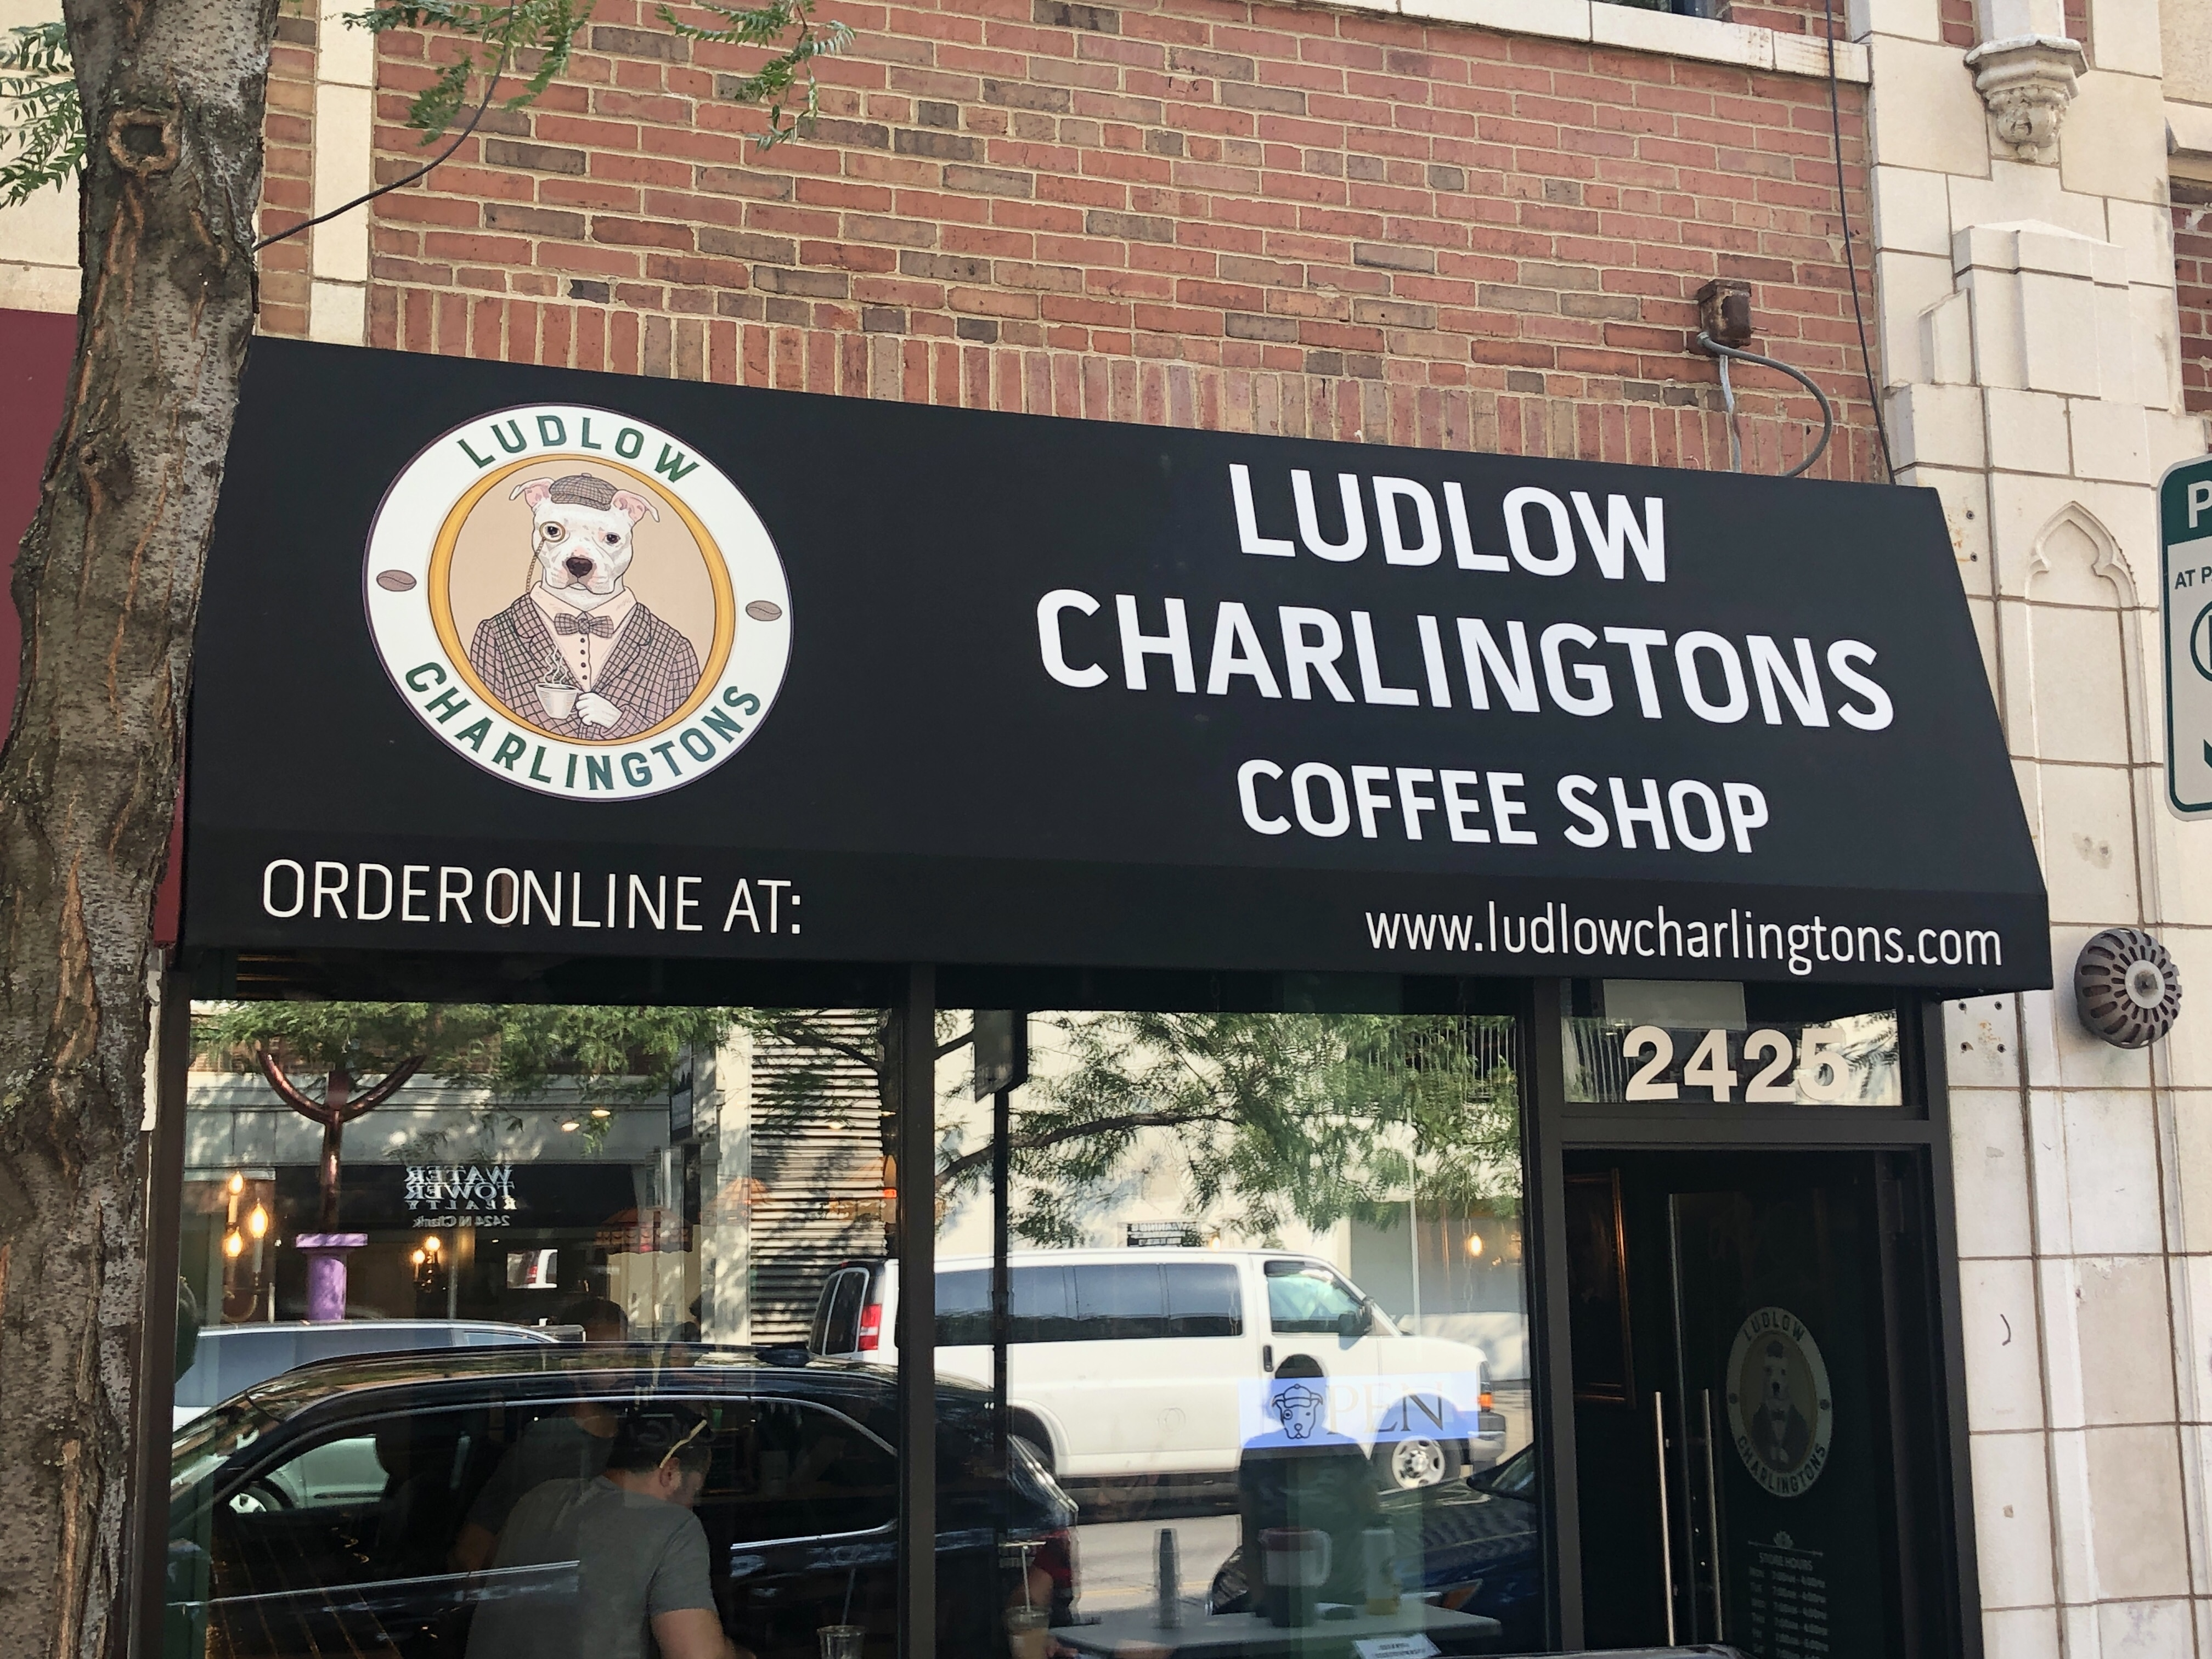 The exterior storefront of a coffeeshop.